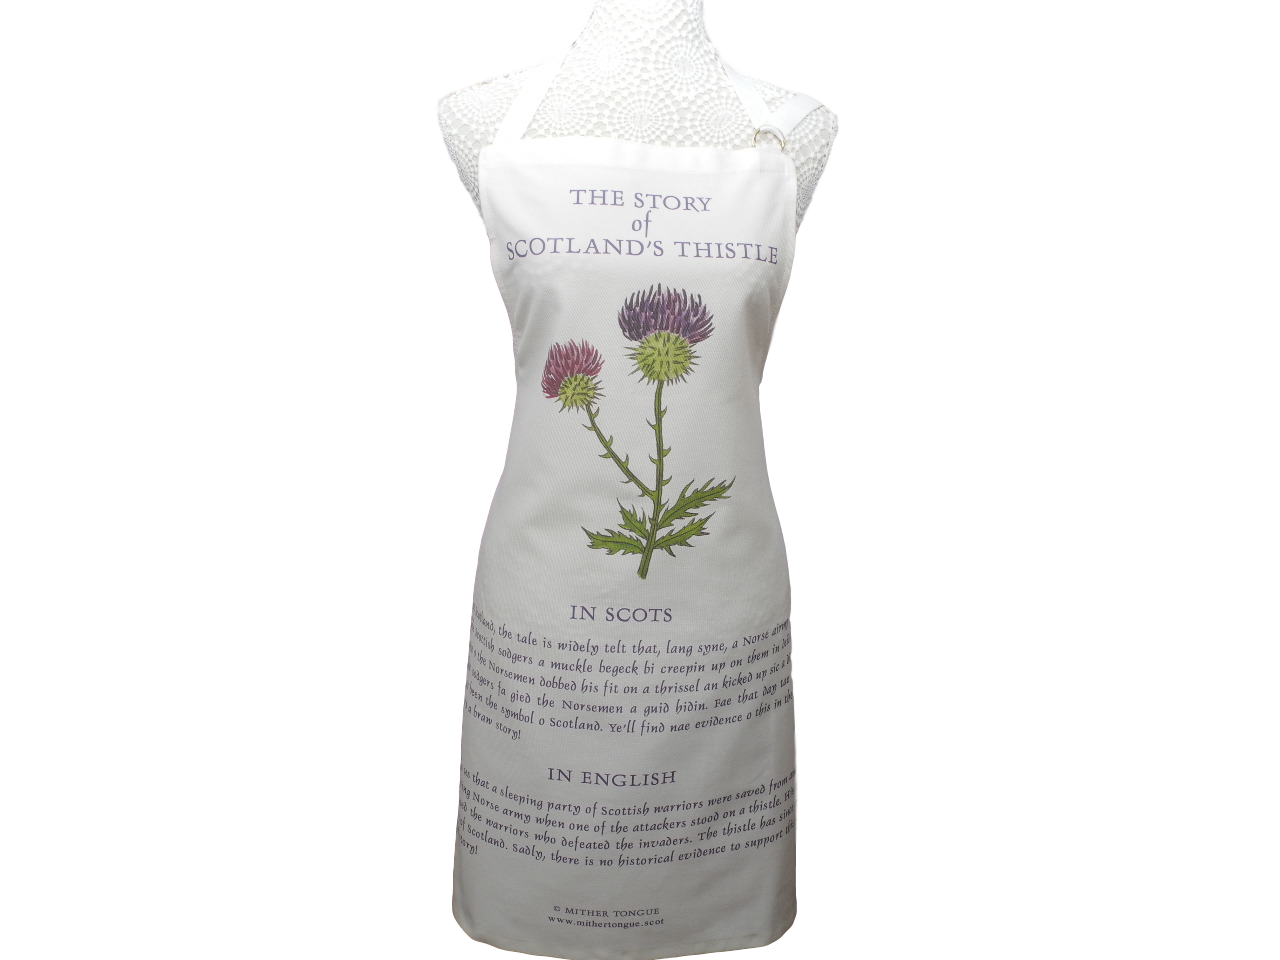 scottish apron the story of scotland's thistle scots language